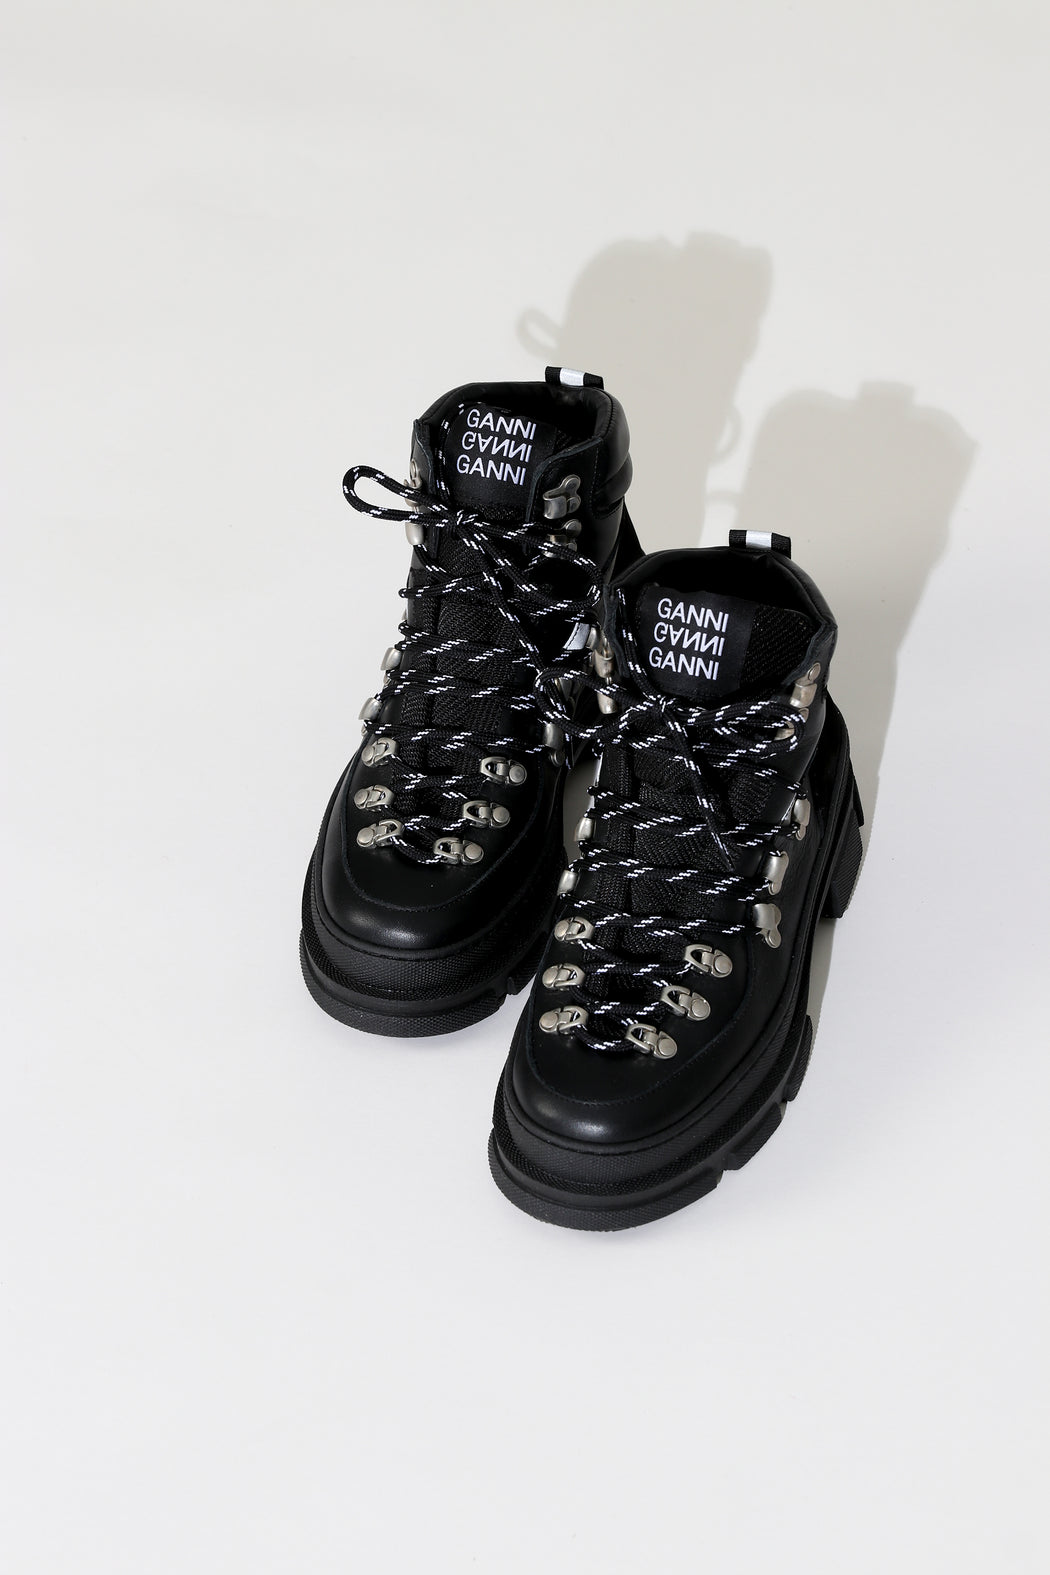 GANNI SPORTY HIKING BOOT BLACK